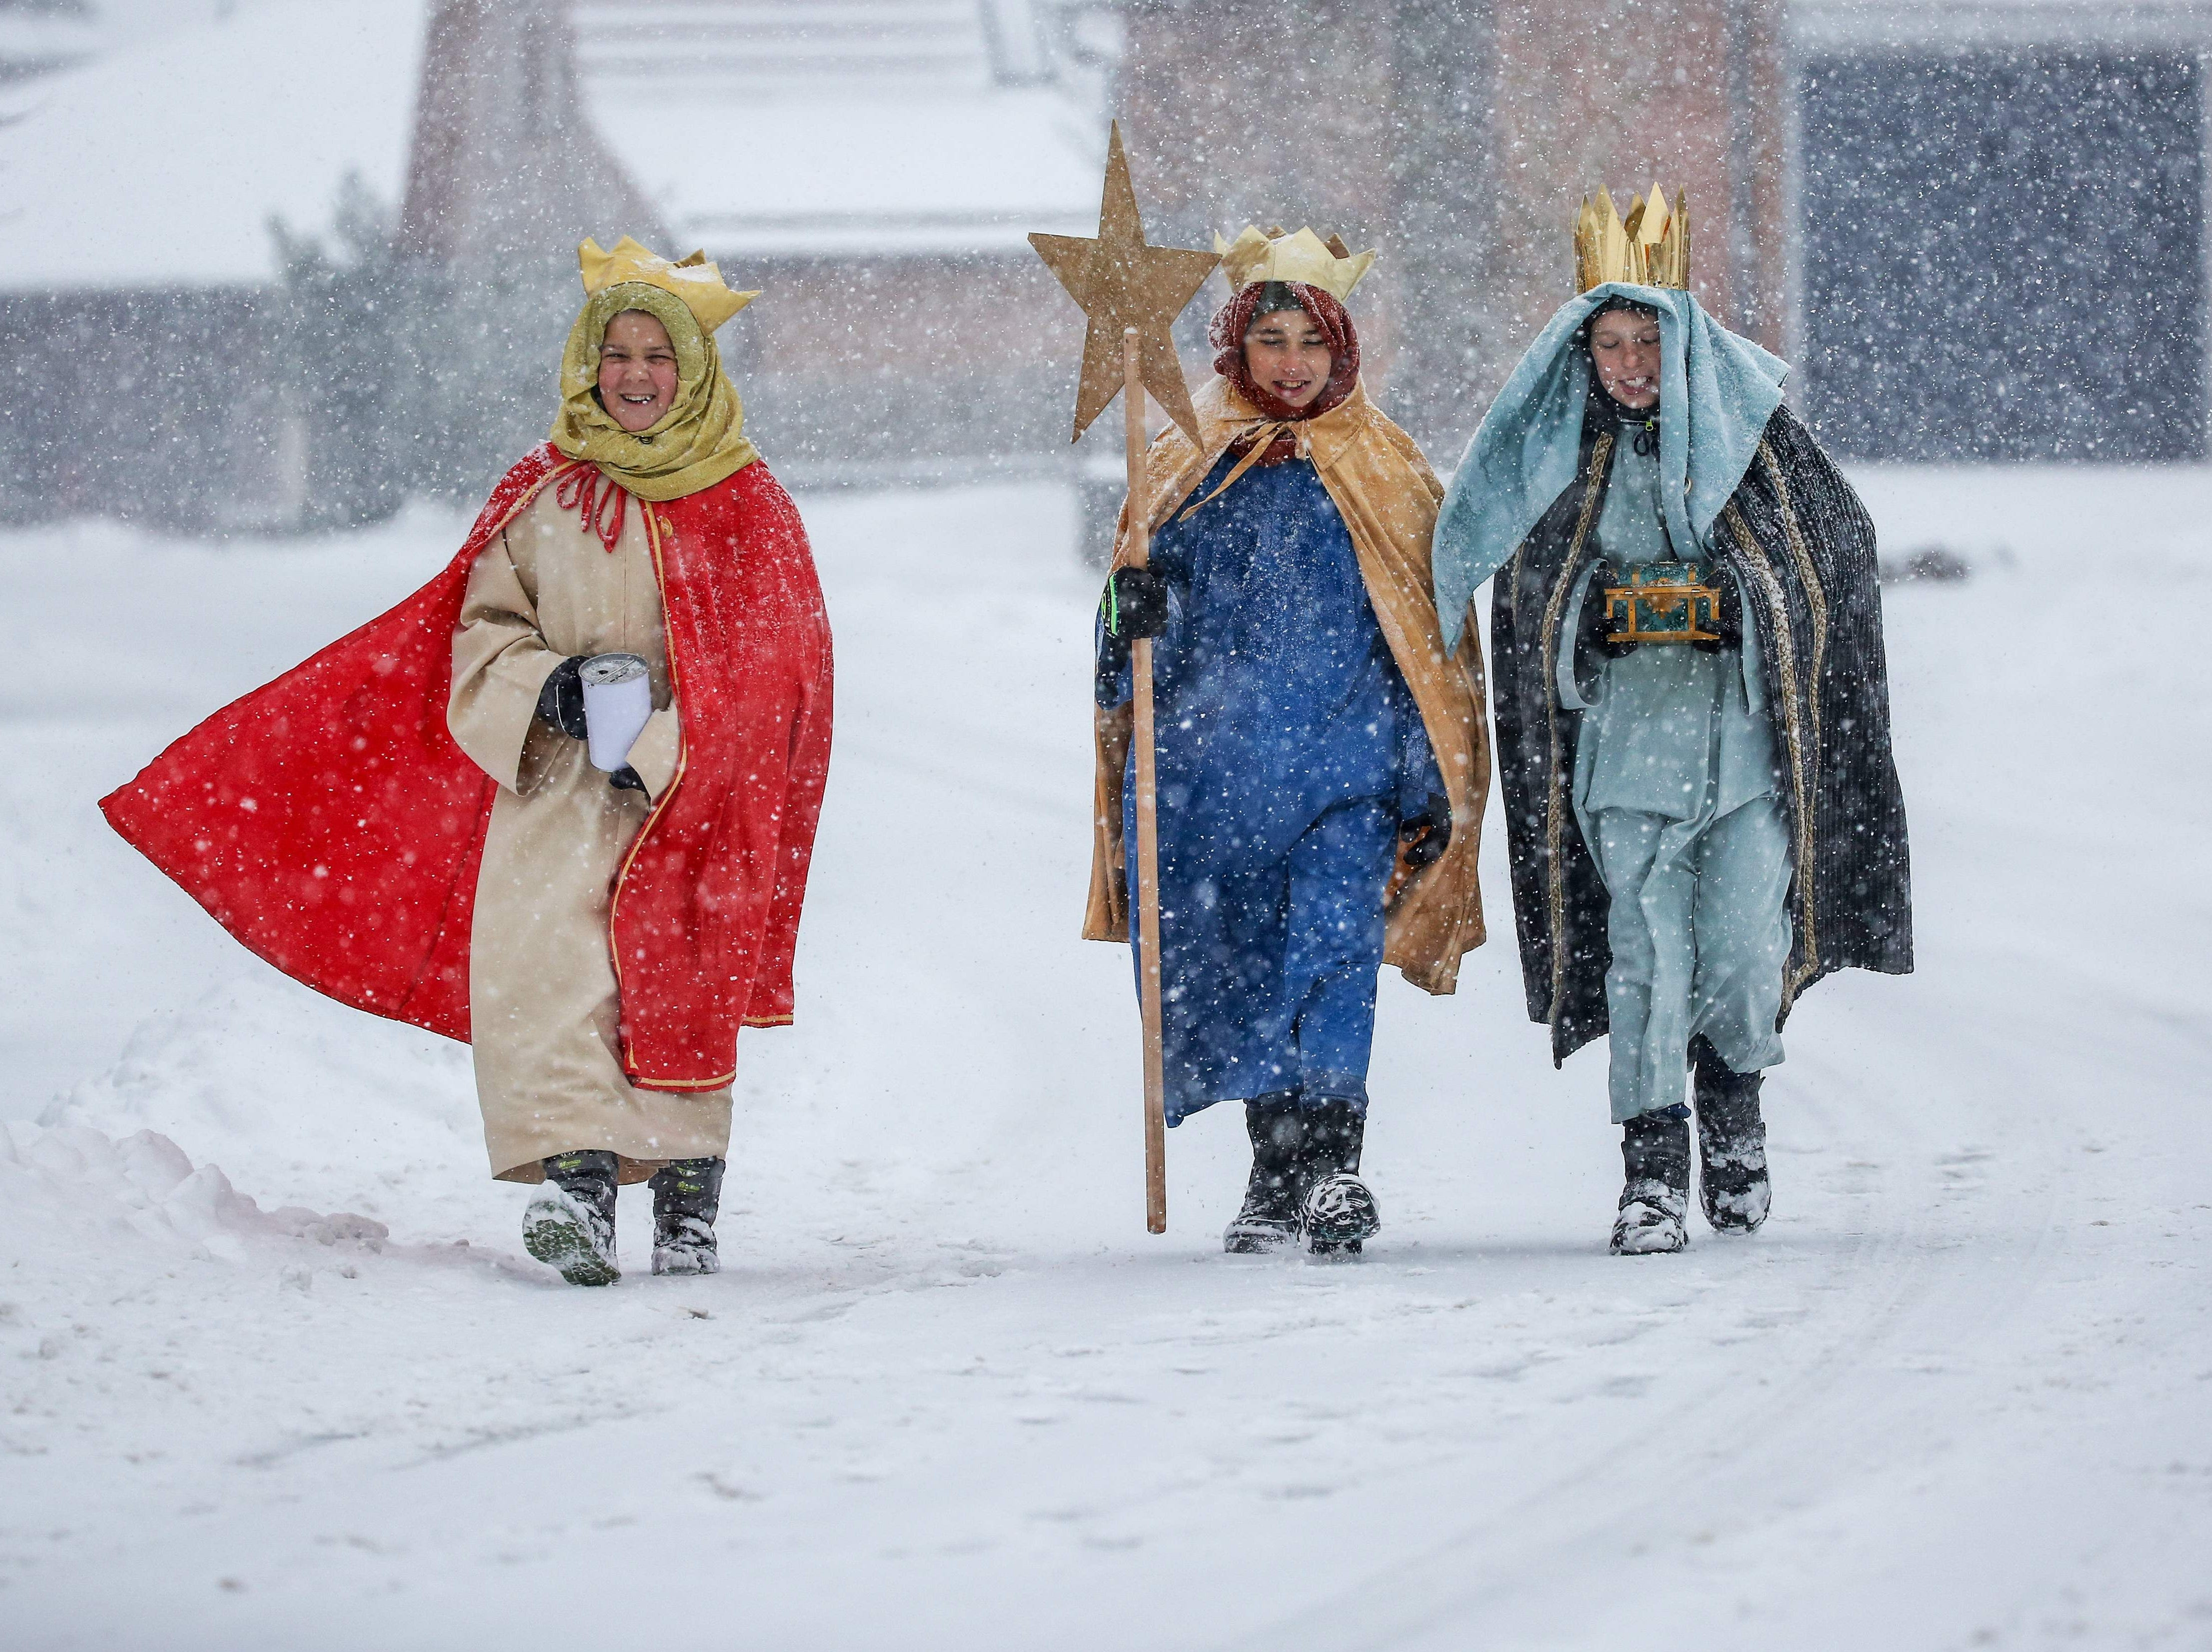 Carol singers dressed as the three Kings walk on the snow-covered path on the eve of the Epiphany celebrations on Jan. 5, 2019 in Lengenwang, Germany.